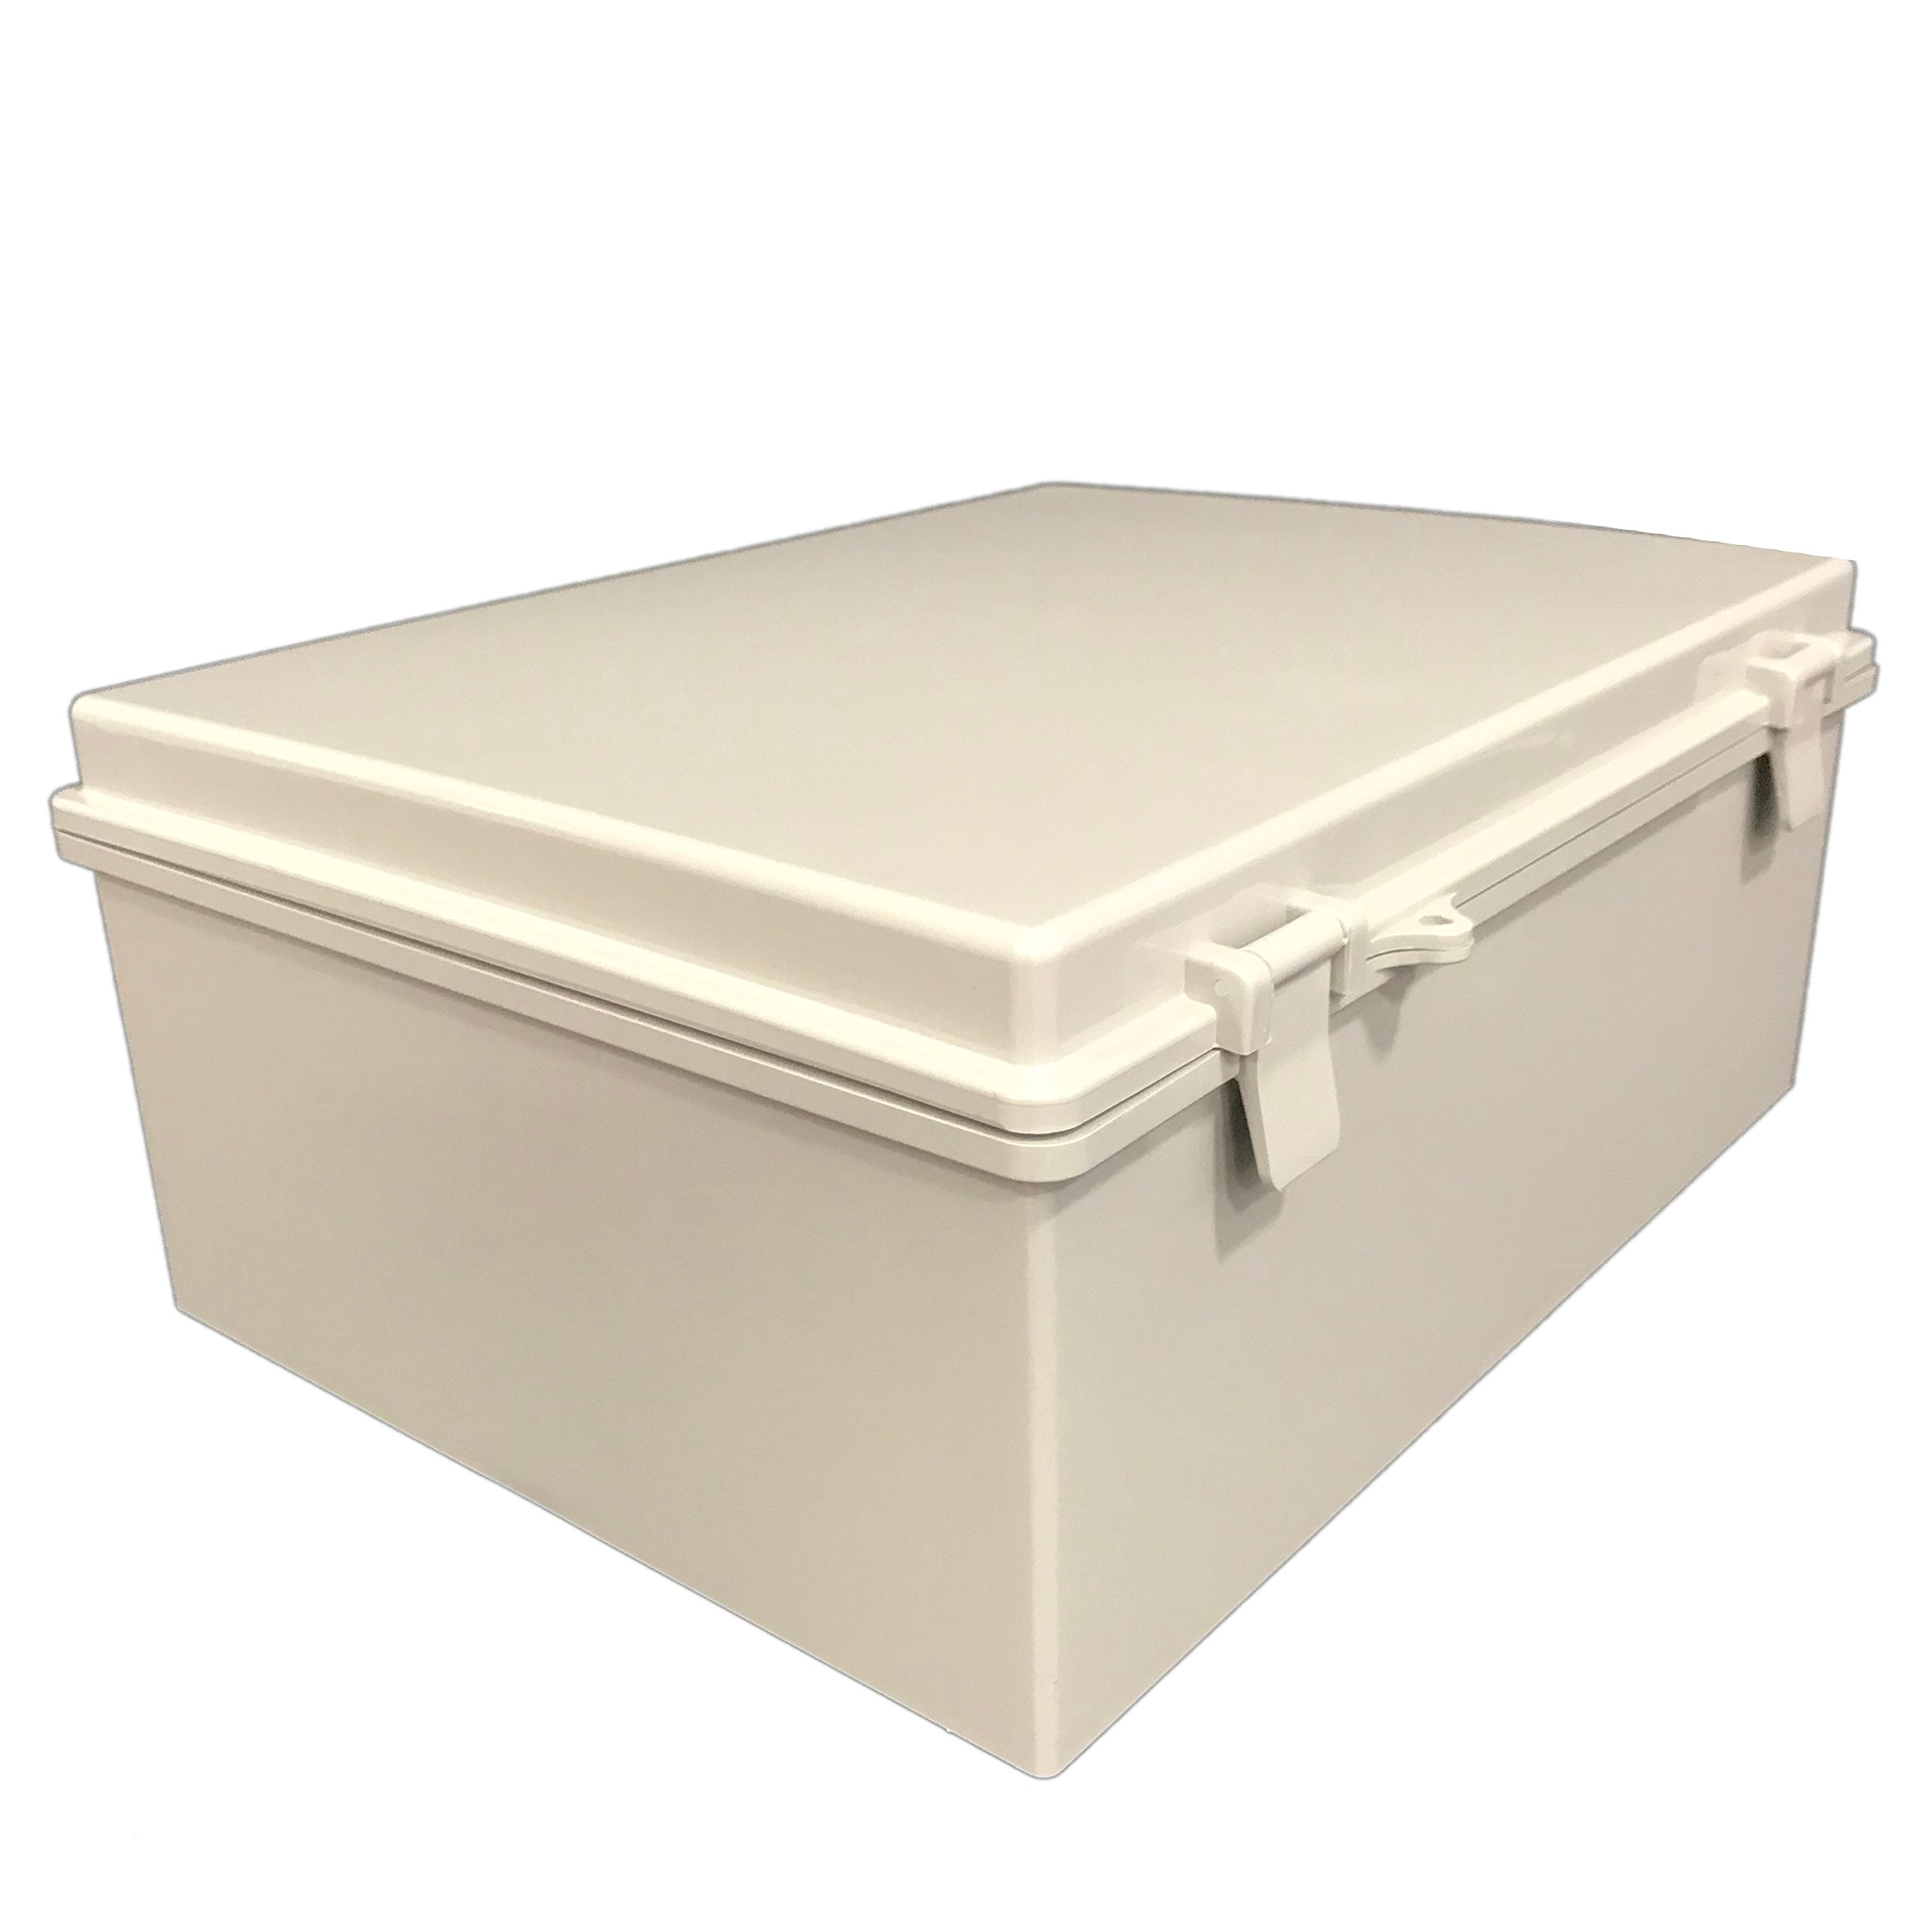 BUD Industries NBB-15247 Style B Plastic Outdoor NEMA Box with Solid Door, 15-43/64'' Length x 11-23/32'' Width x 6-19/64'' Height, Light Gray Finish by BUD Industries